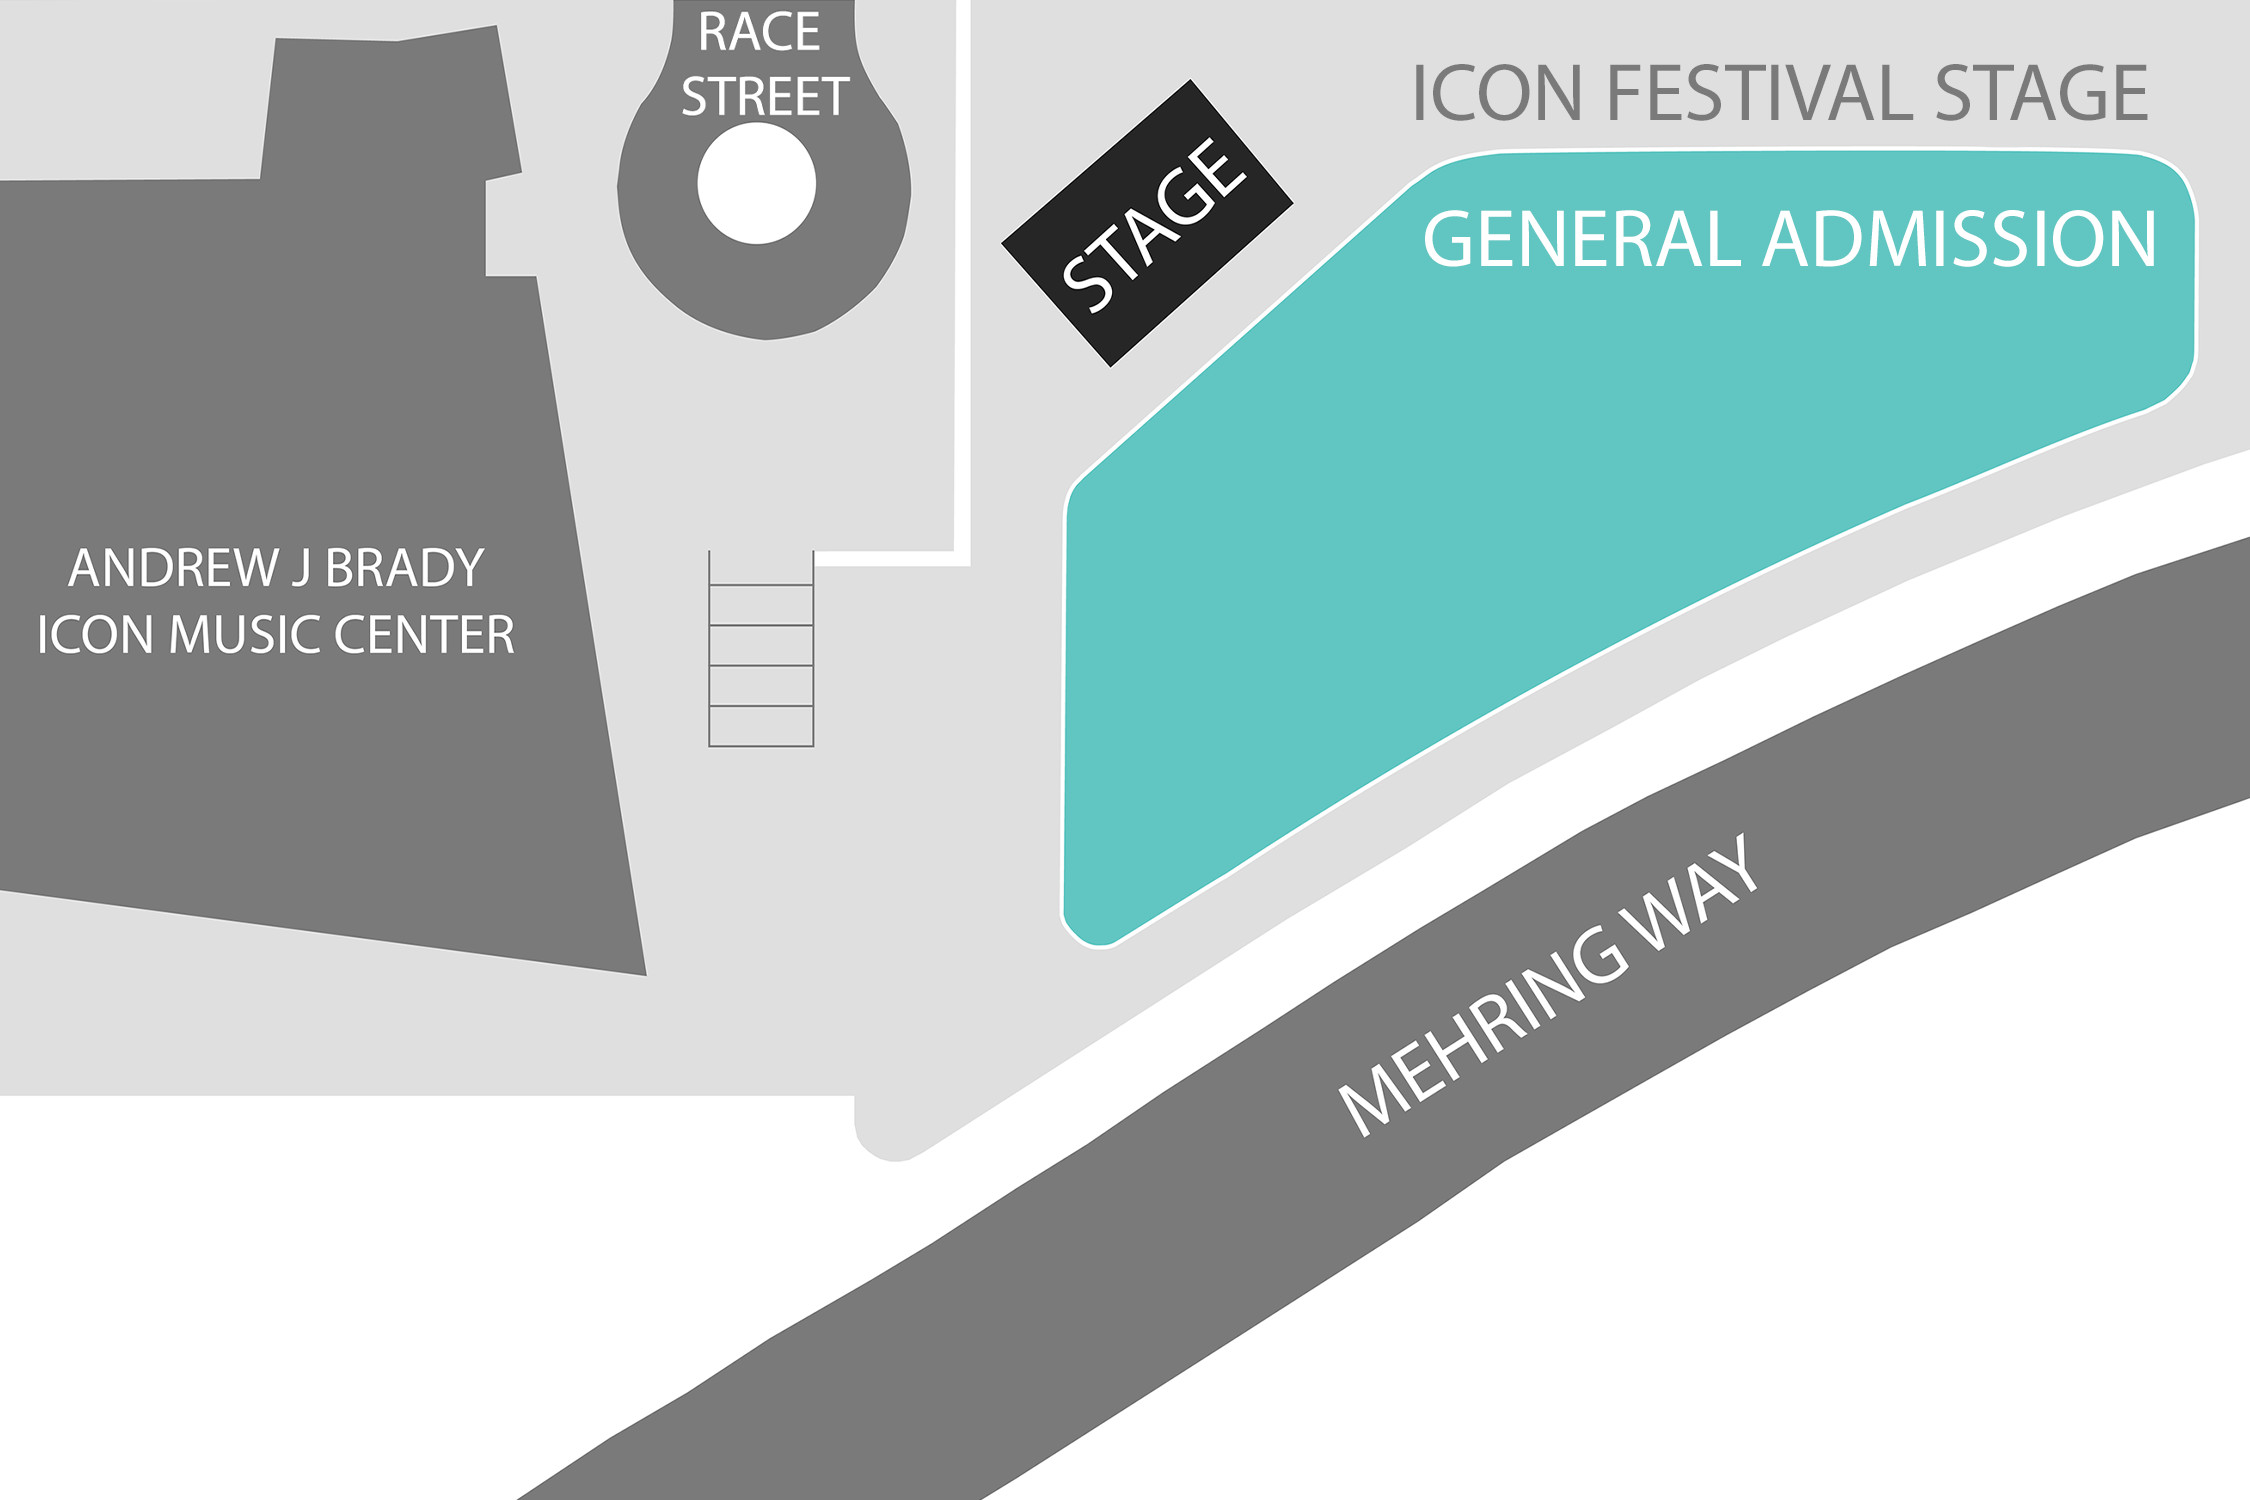 ICON Outdoor Stage - General Admission